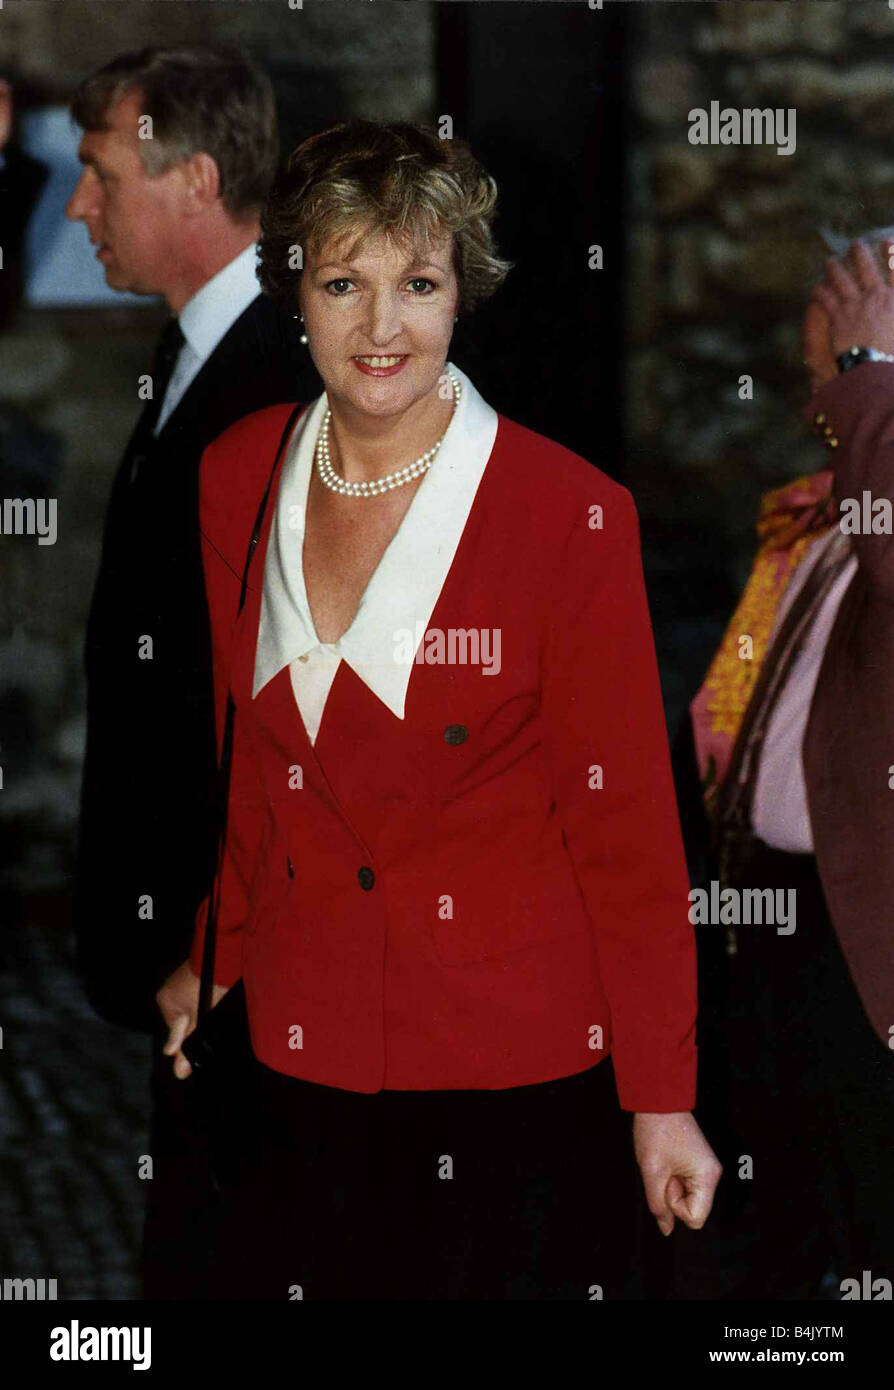 Penelope Keith actress who starred in To The Manor Born October 1989 DBase - Stock Image